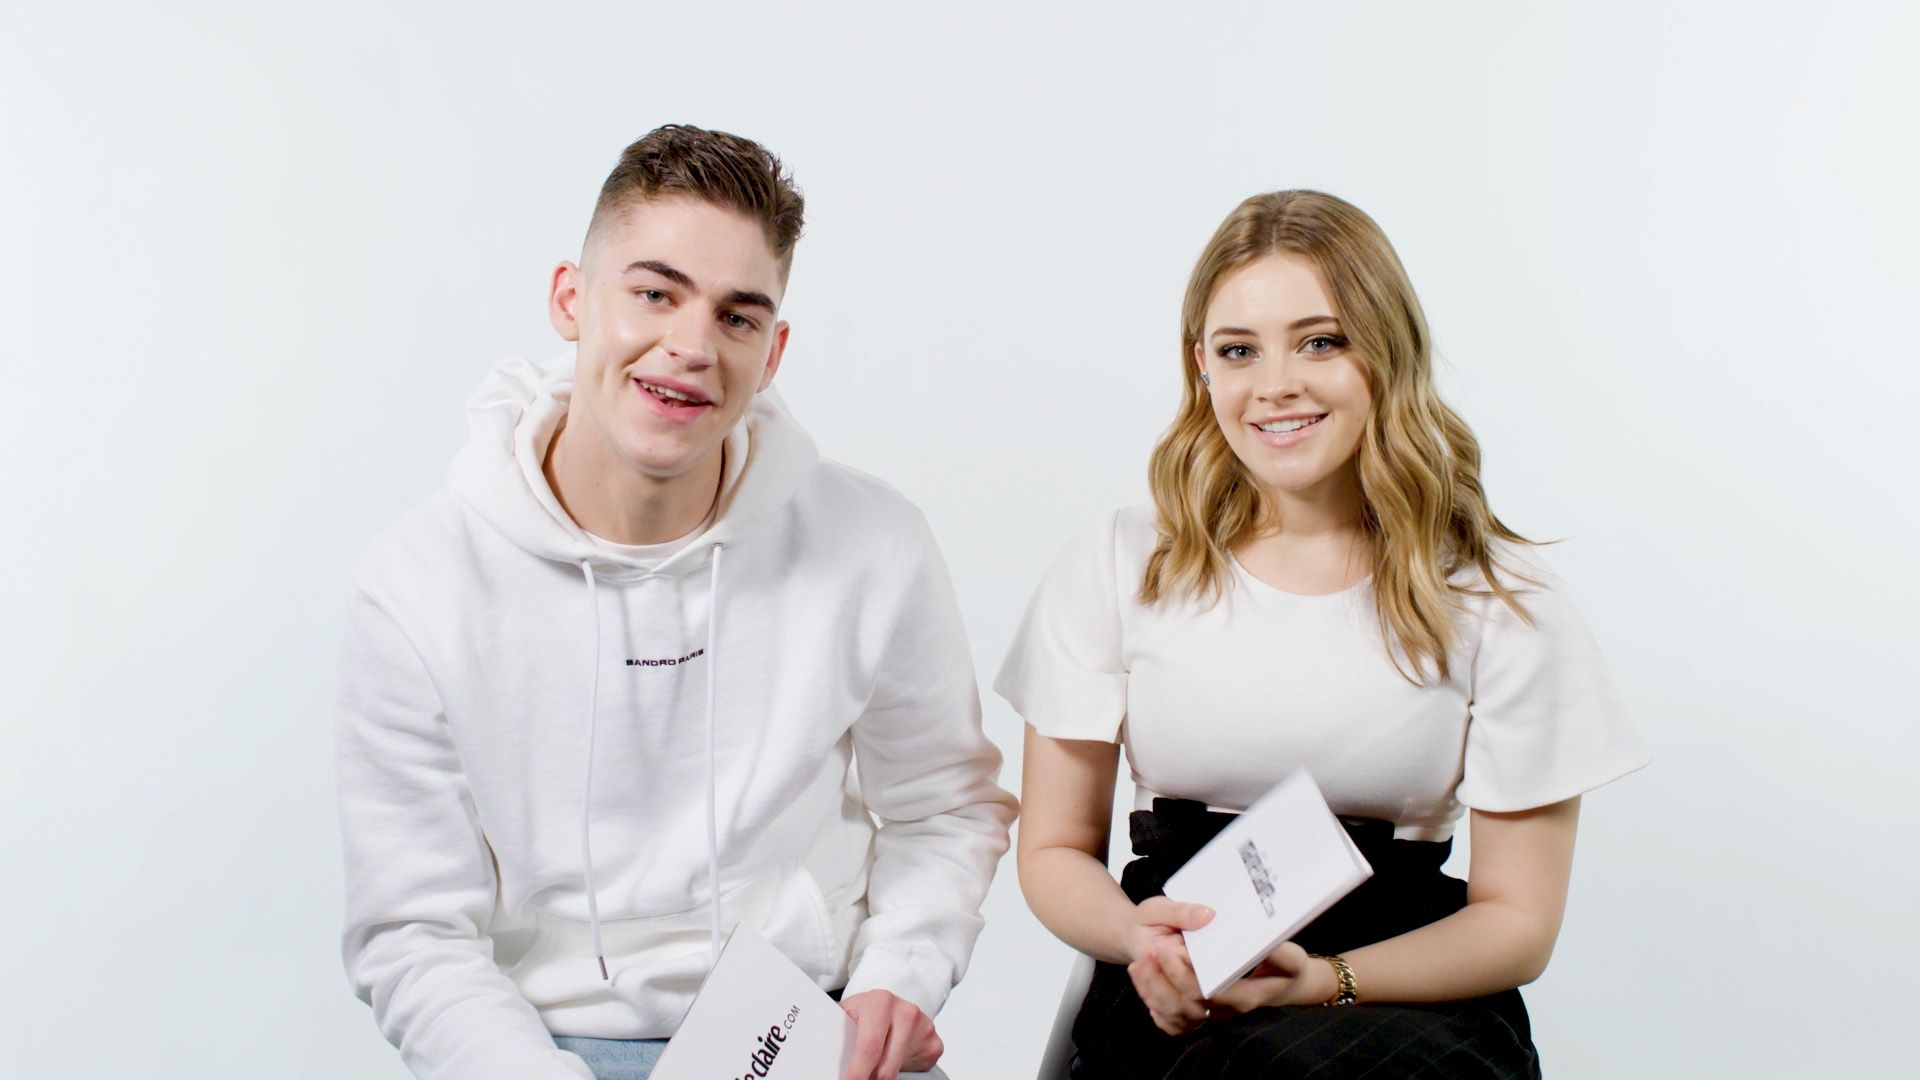 Are After Co Stars Hero Fiennes Tiffin And Josephine Langford Friends In Real Life